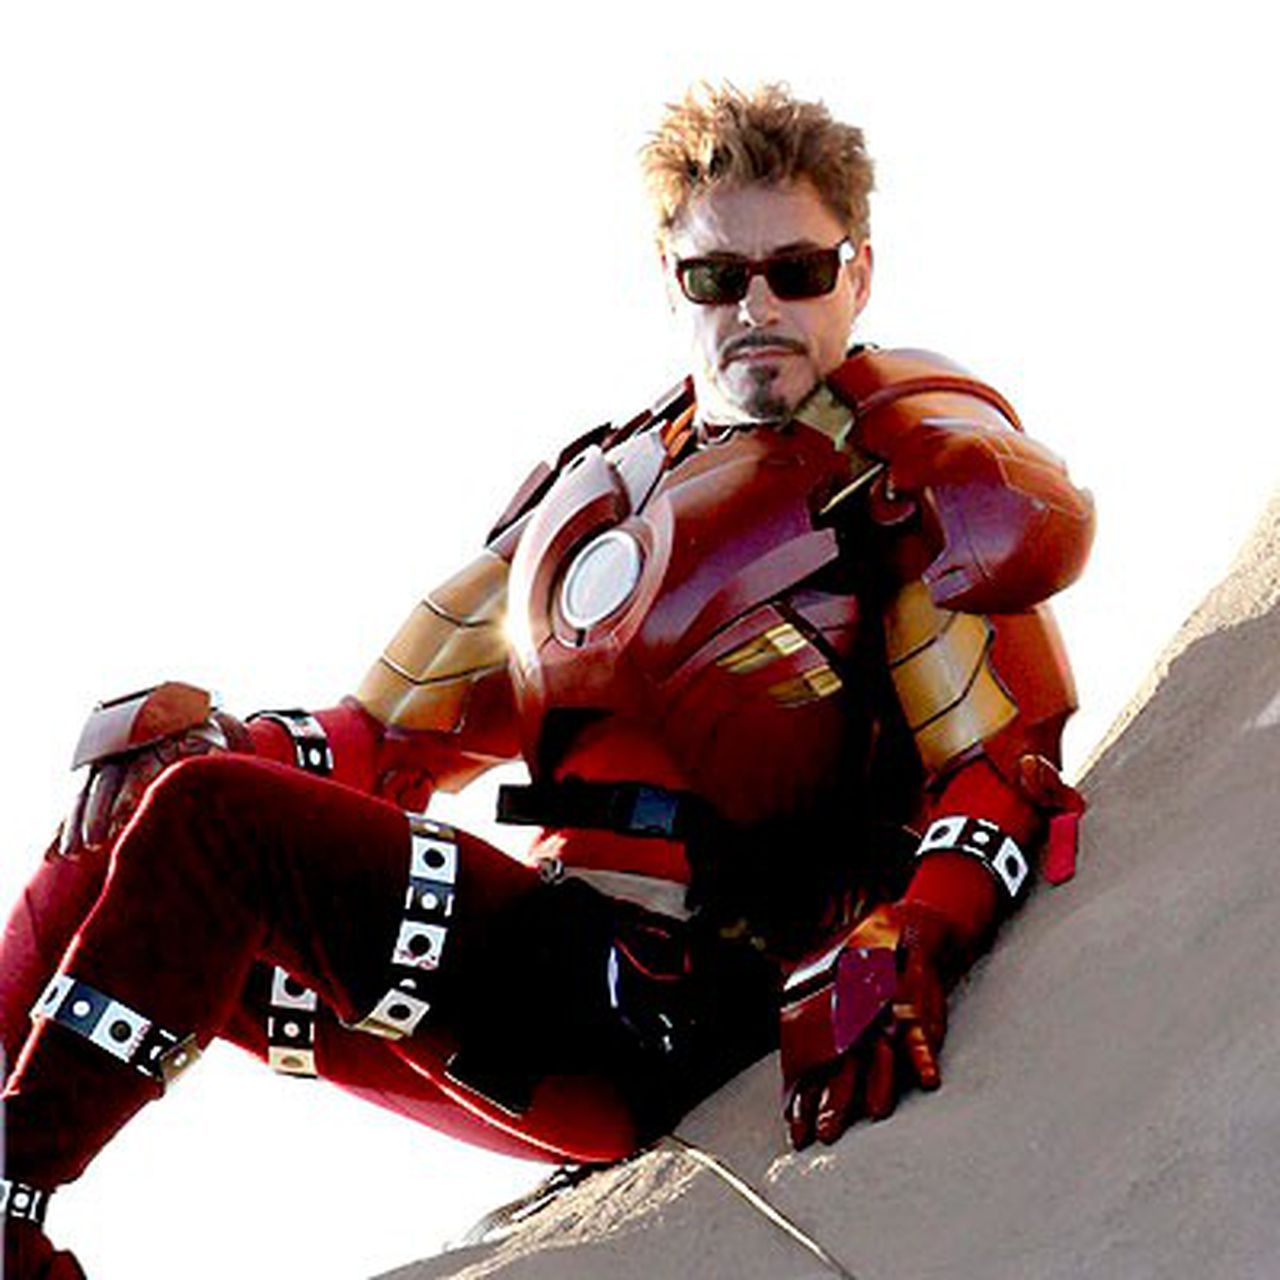 File:Iron-man-2.jpg